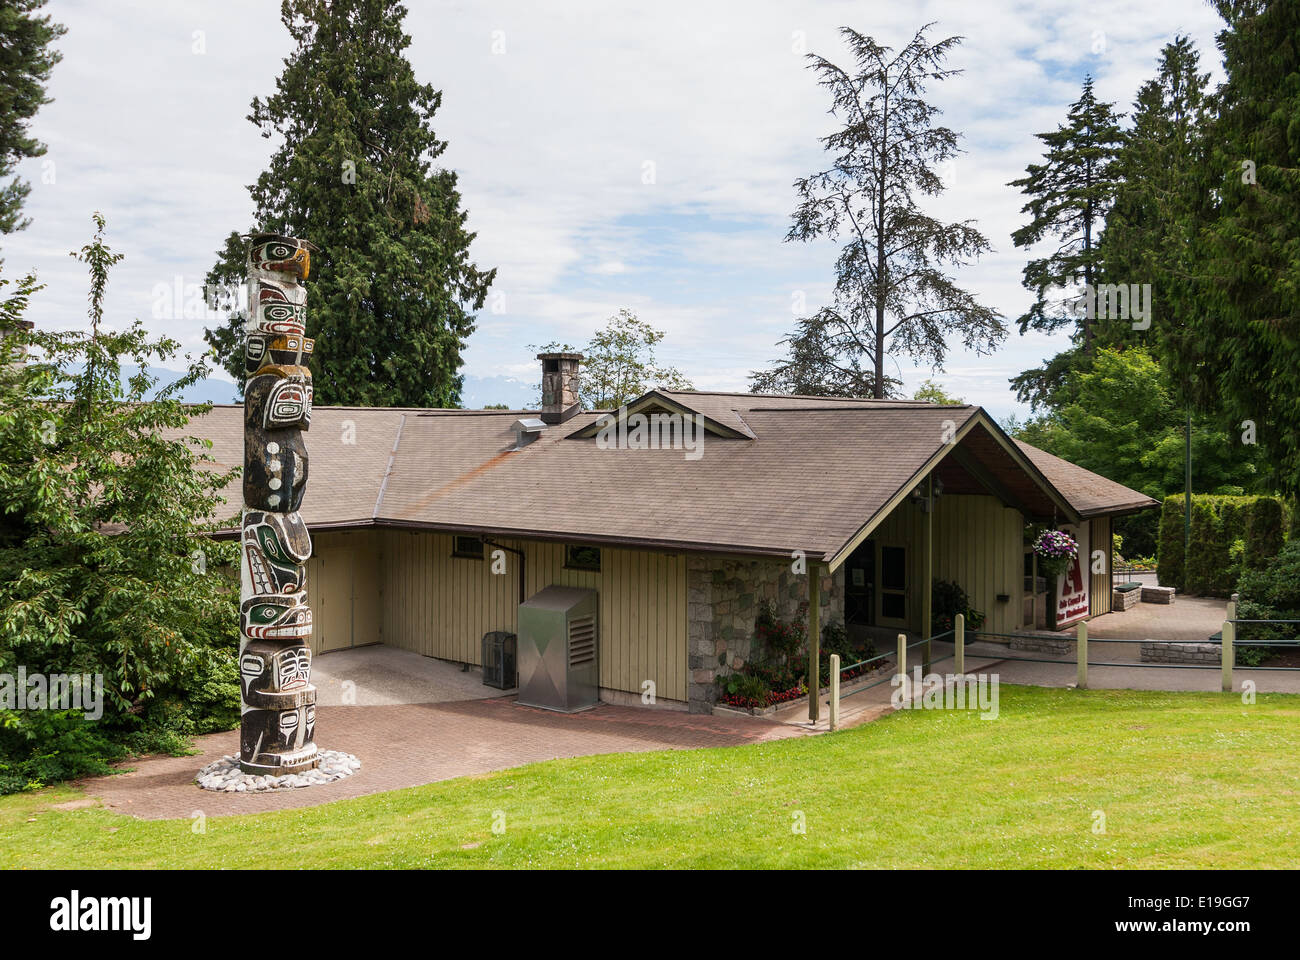 Elk203-1042 Canada, British Columbia, New Westminster, Arts Council, totem pole - Stock Image